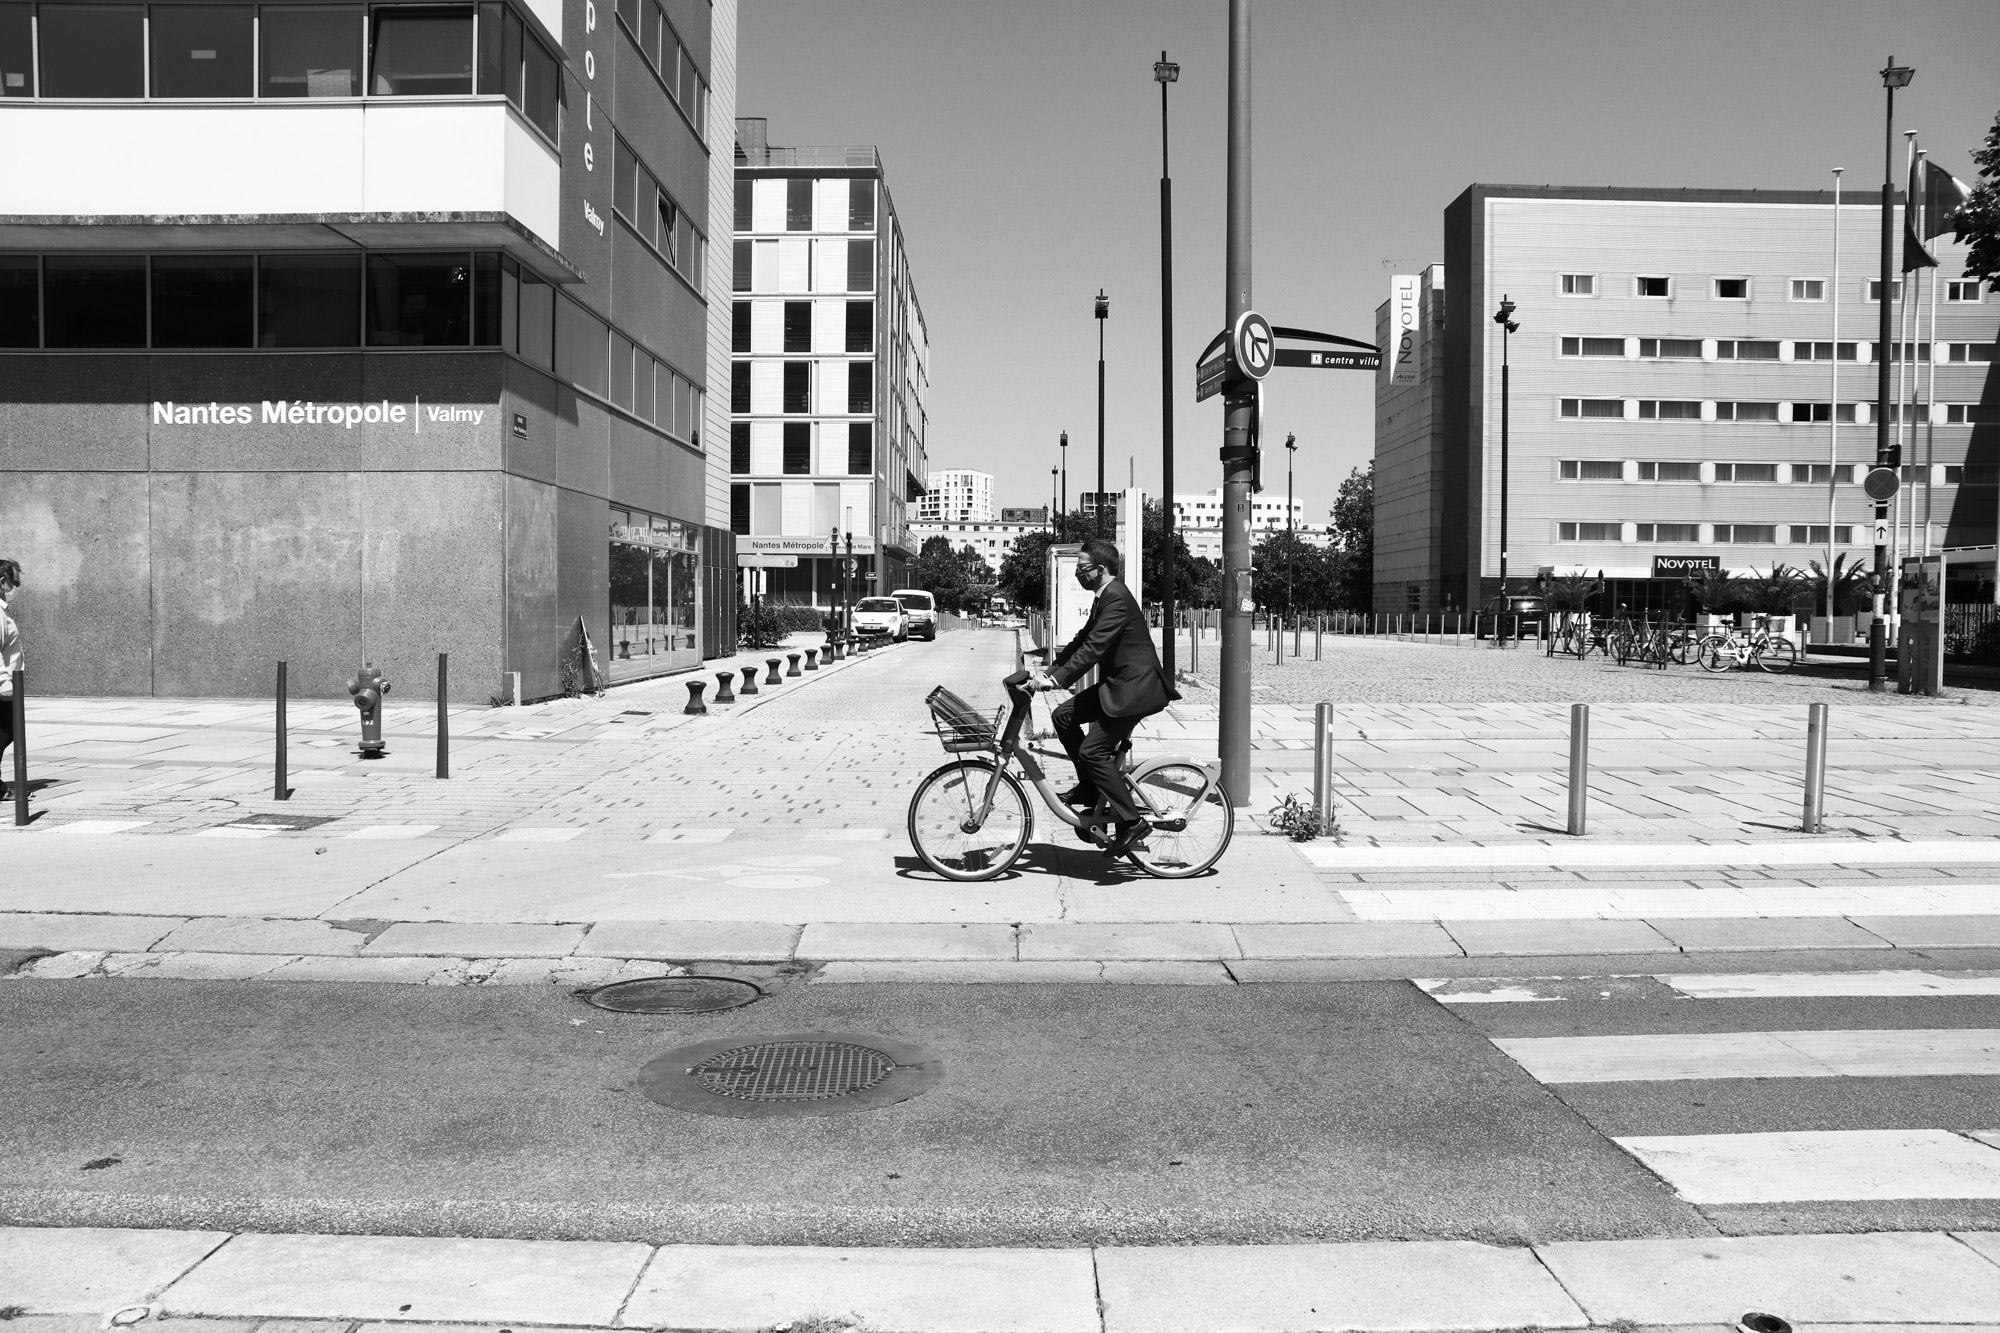 """Ride with style"" - Avenue Carnot, Nantes. ©Clémence Rougetet"